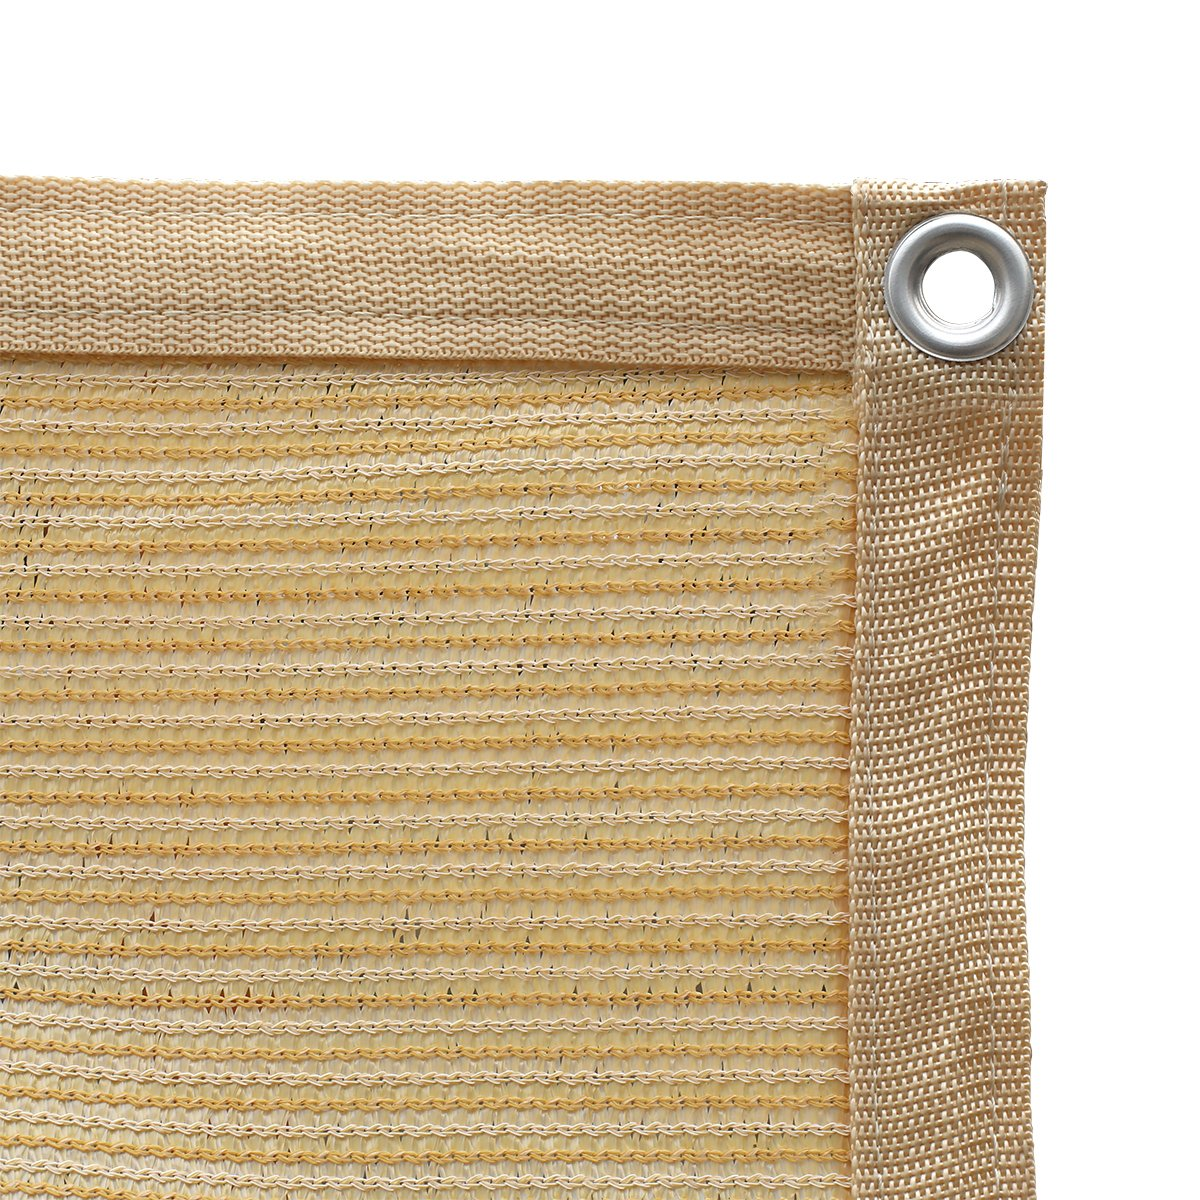 Shatex Shade Fabric for Pergola//Patio//Garden Shade Panel with Grommets 6x16ft Wheat